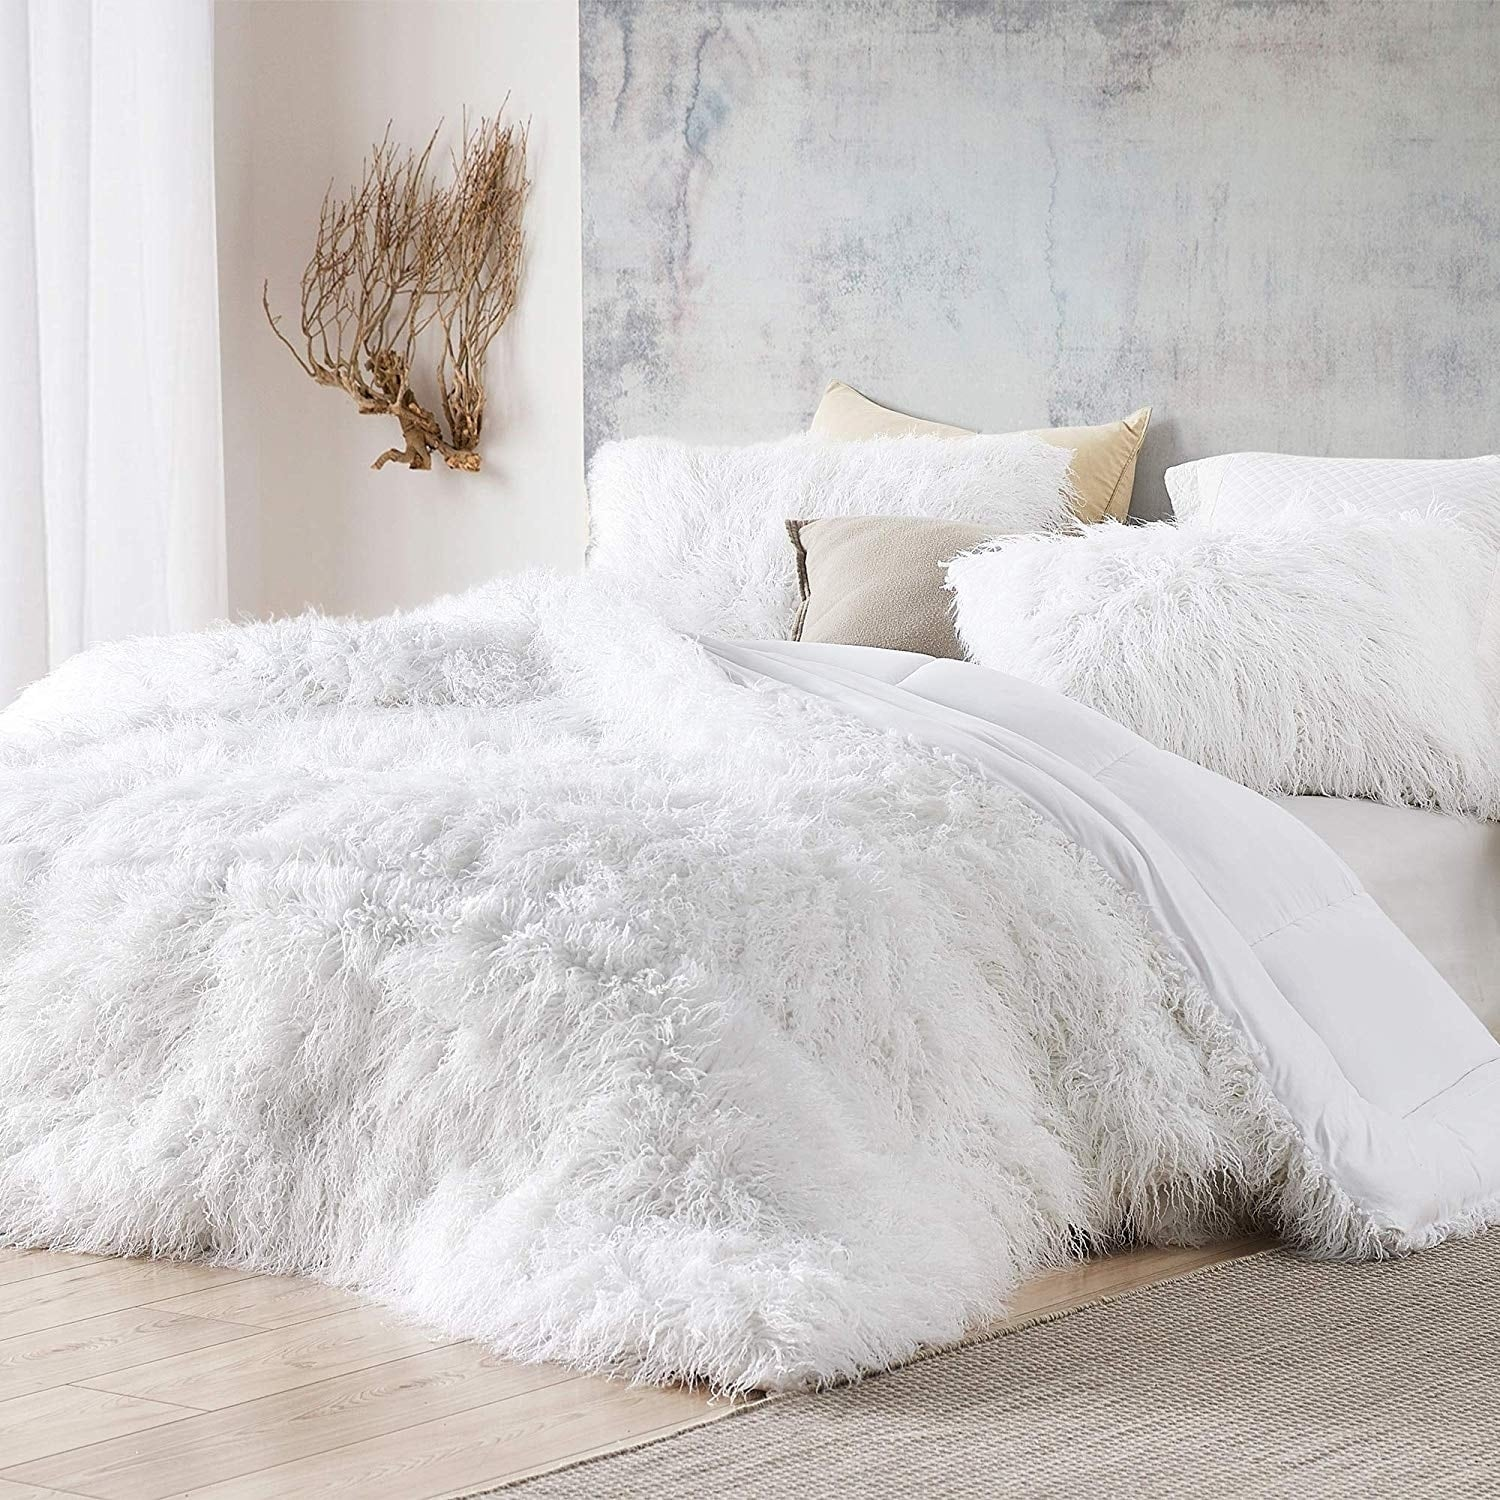 The Bare Himalayan Yeti Coma Inducer Oversized Comforter Pure White Shams Not Included On Sale Overstock 30969240